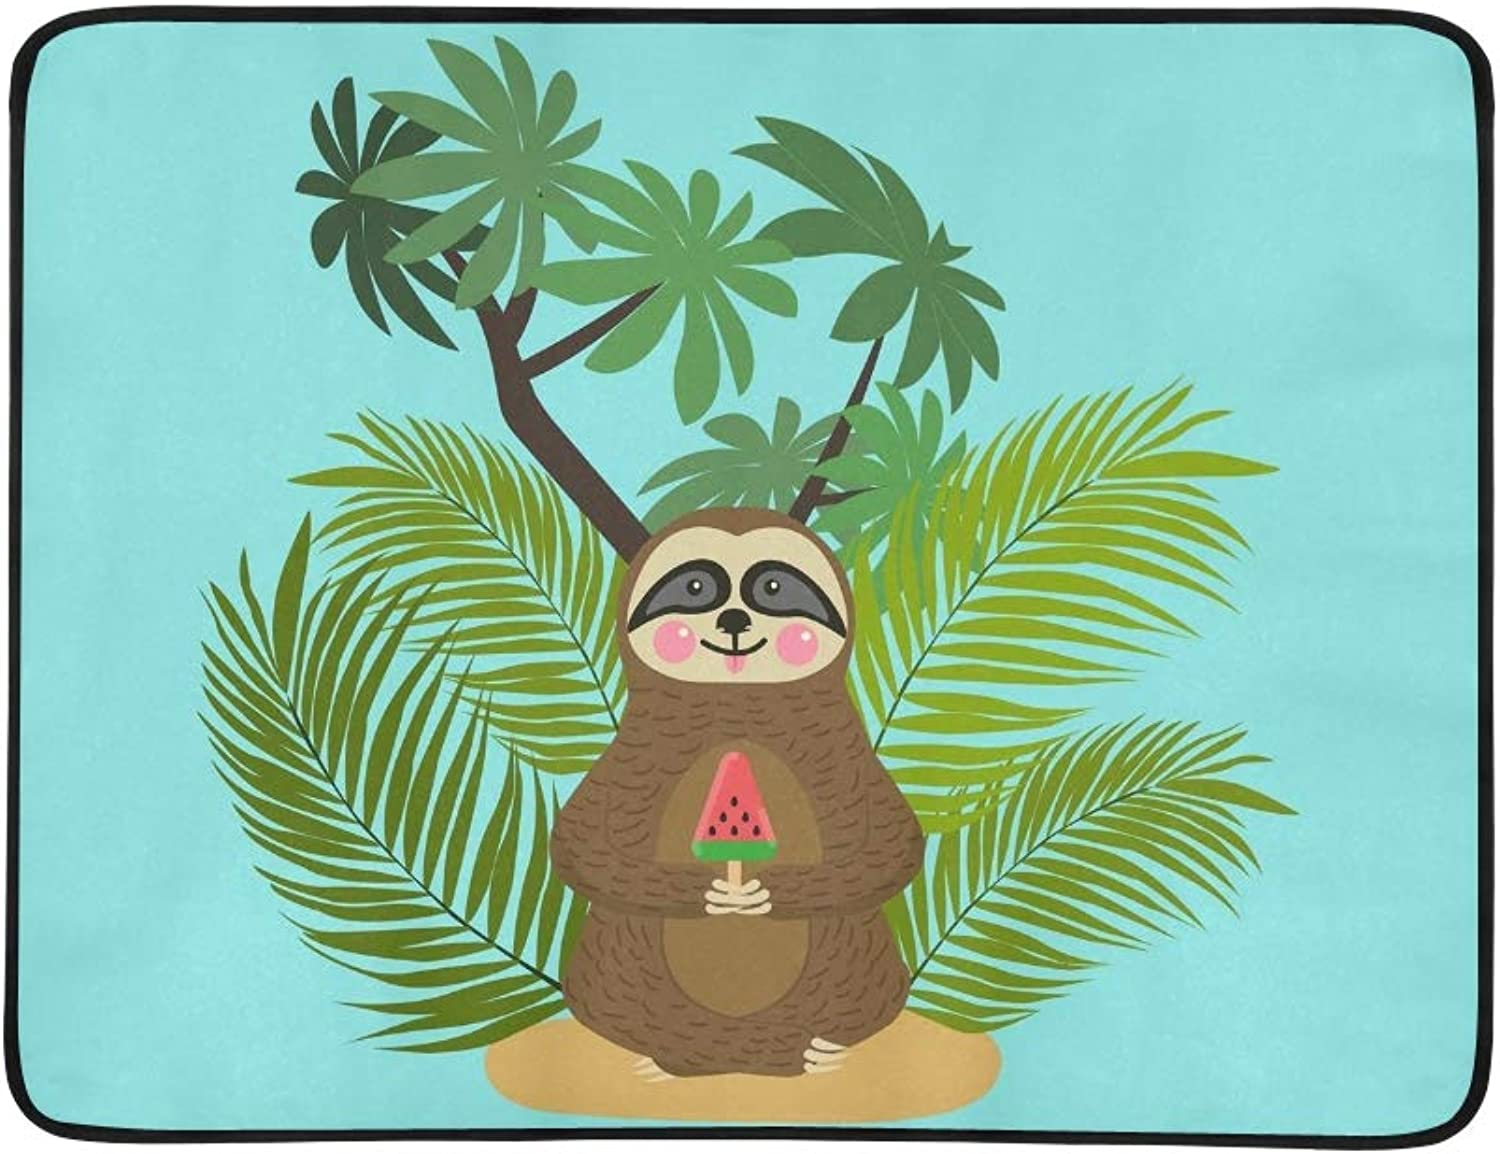 Baby Sloth Eating Watermelon Ice Portable and Blanket Mat 60x78 Inch